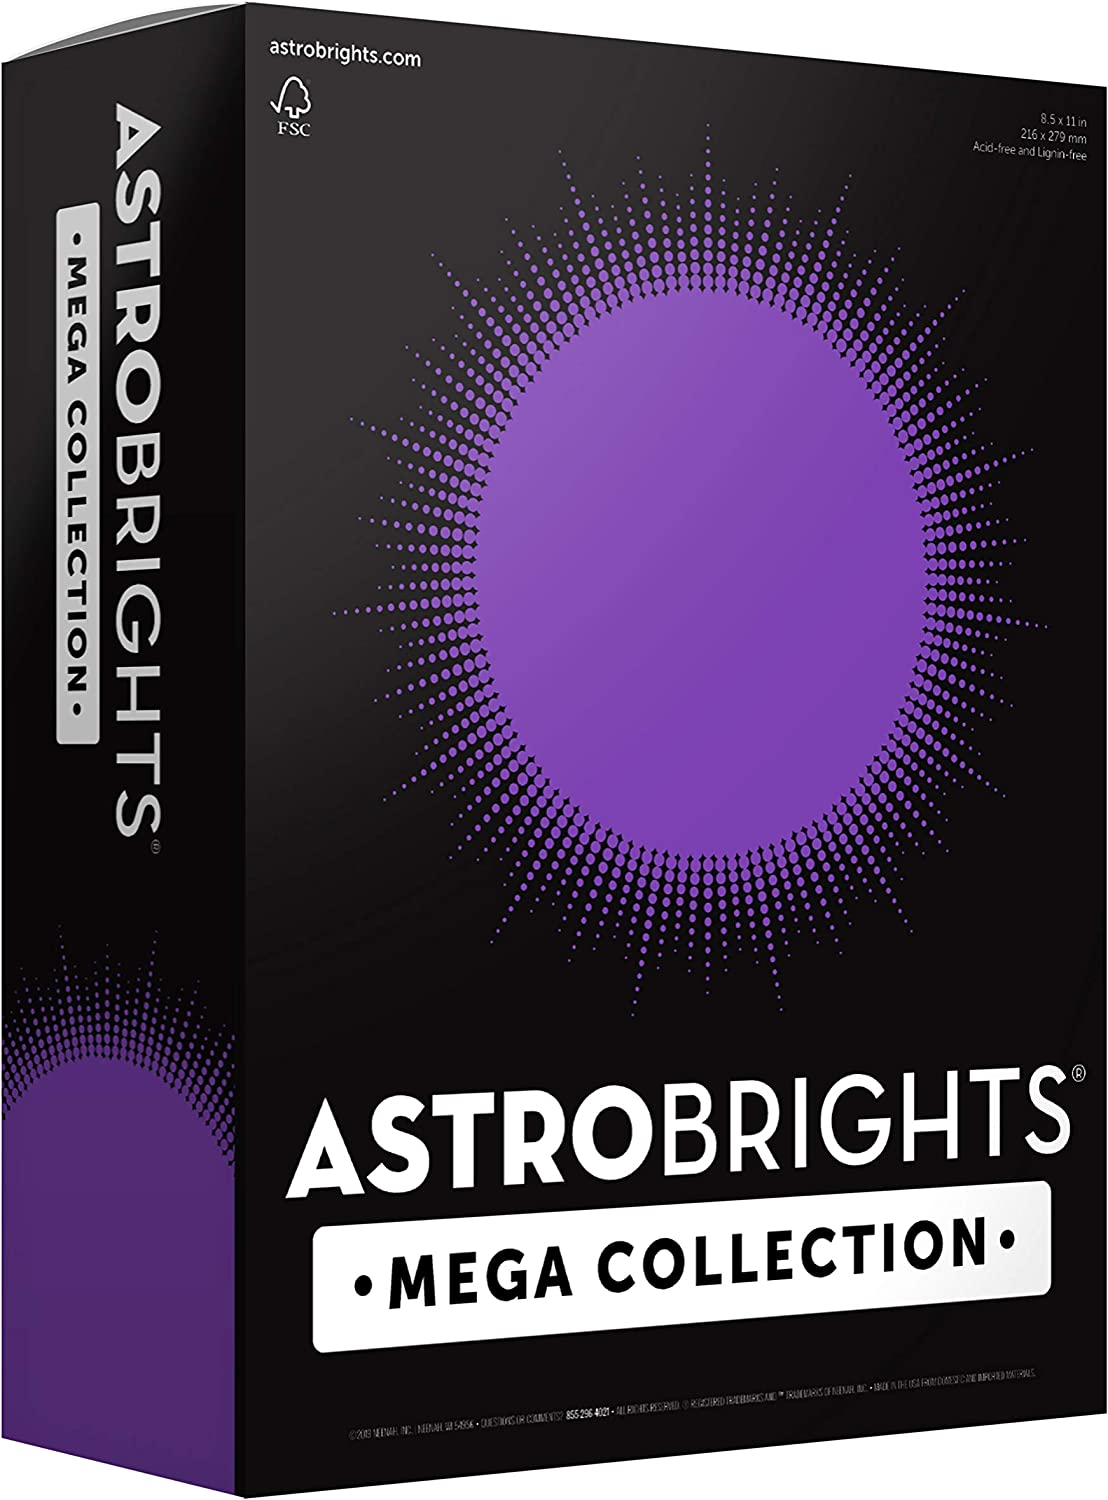 "Astrobrights Mega Collection, Colored Cardstock, Ultra Purple, 320 Sheets, 65 lb/176 gsm, 8.5"" x 11"" - MORE SHEETS! (91696)"